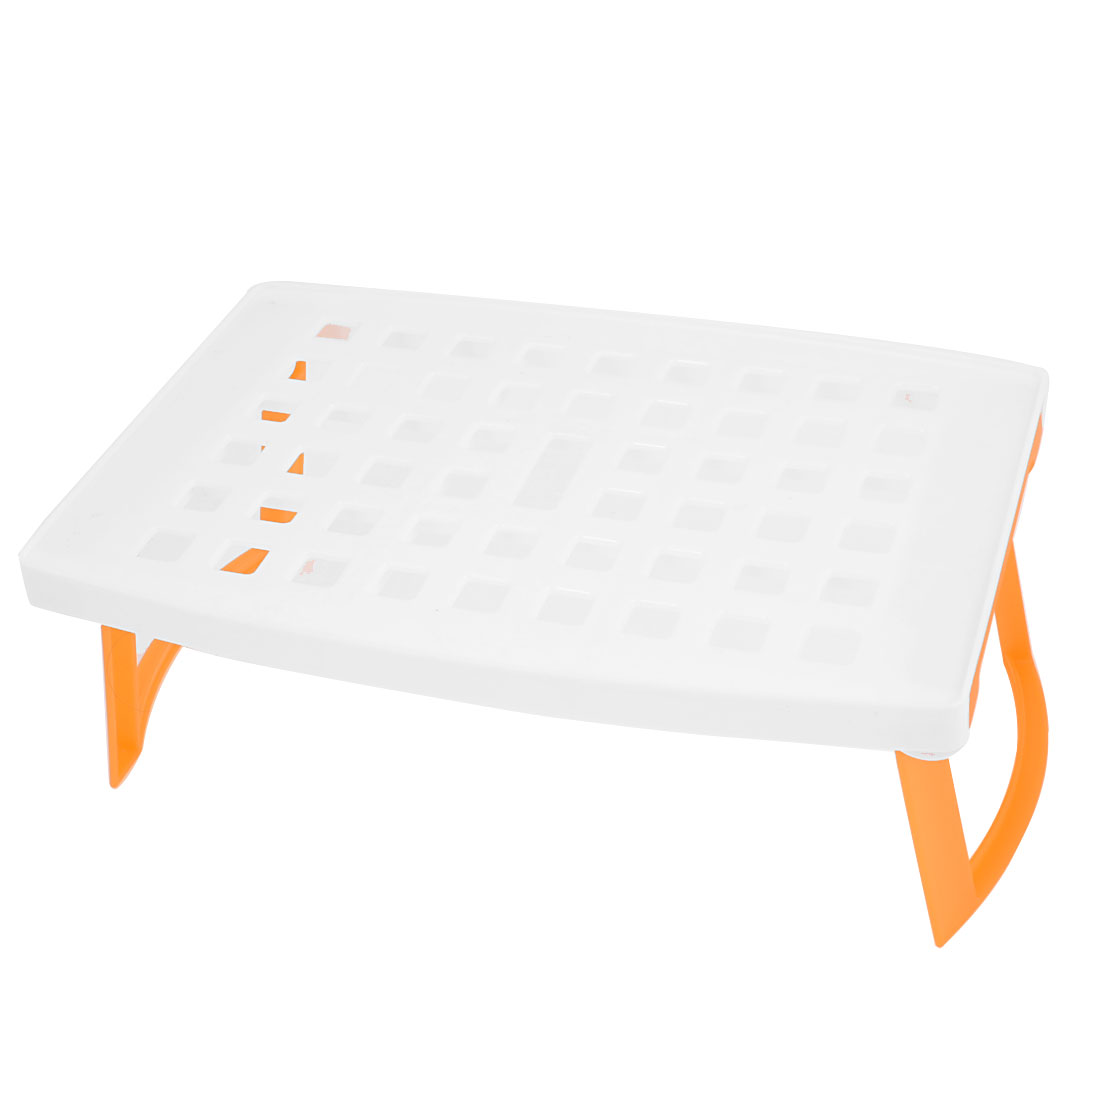 Home Kitchen White Orange Plastic Microwave Oven Baking Steaming Rack Tray Stand 245 x 165 x 88mm